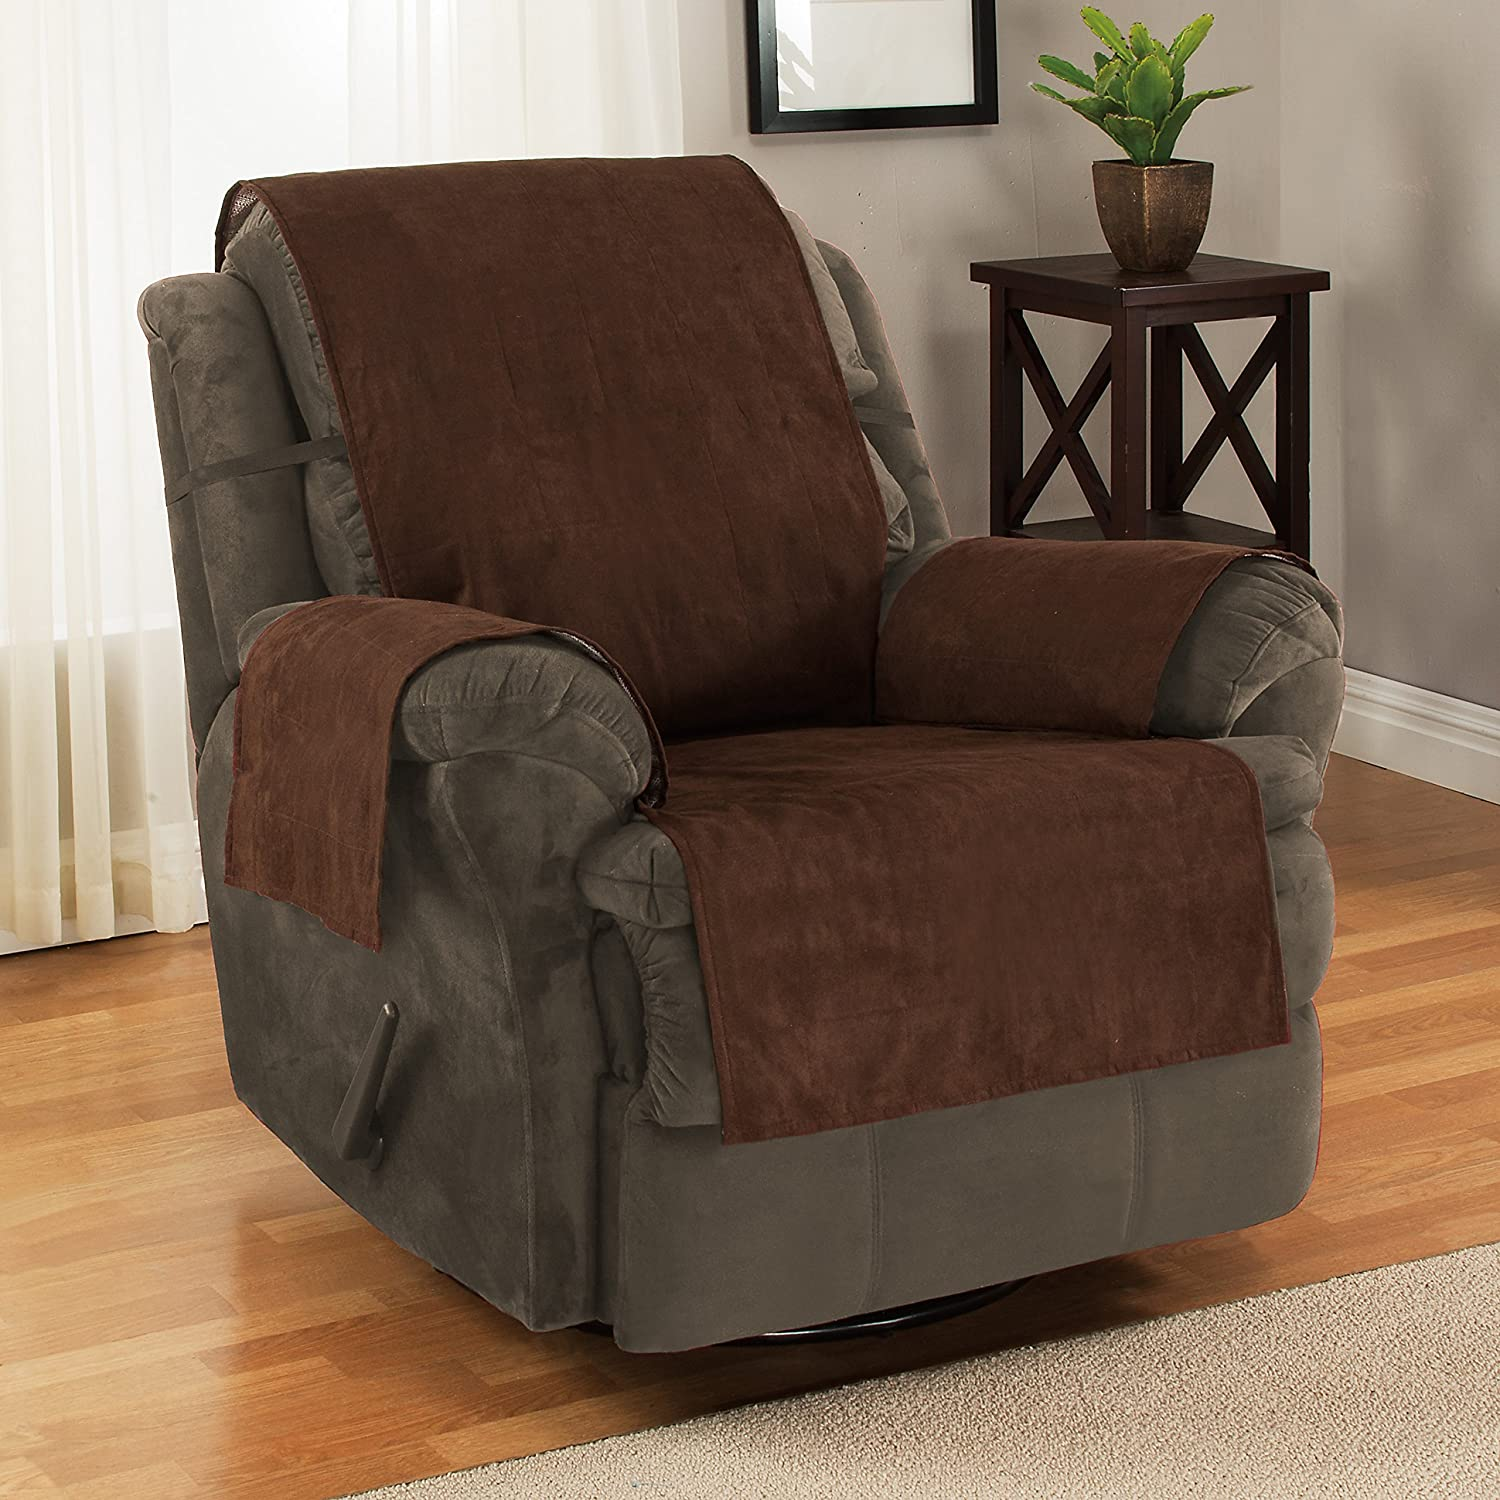 Amazon Anti Slip Recliner Slipcover Recliner Cover Recliner